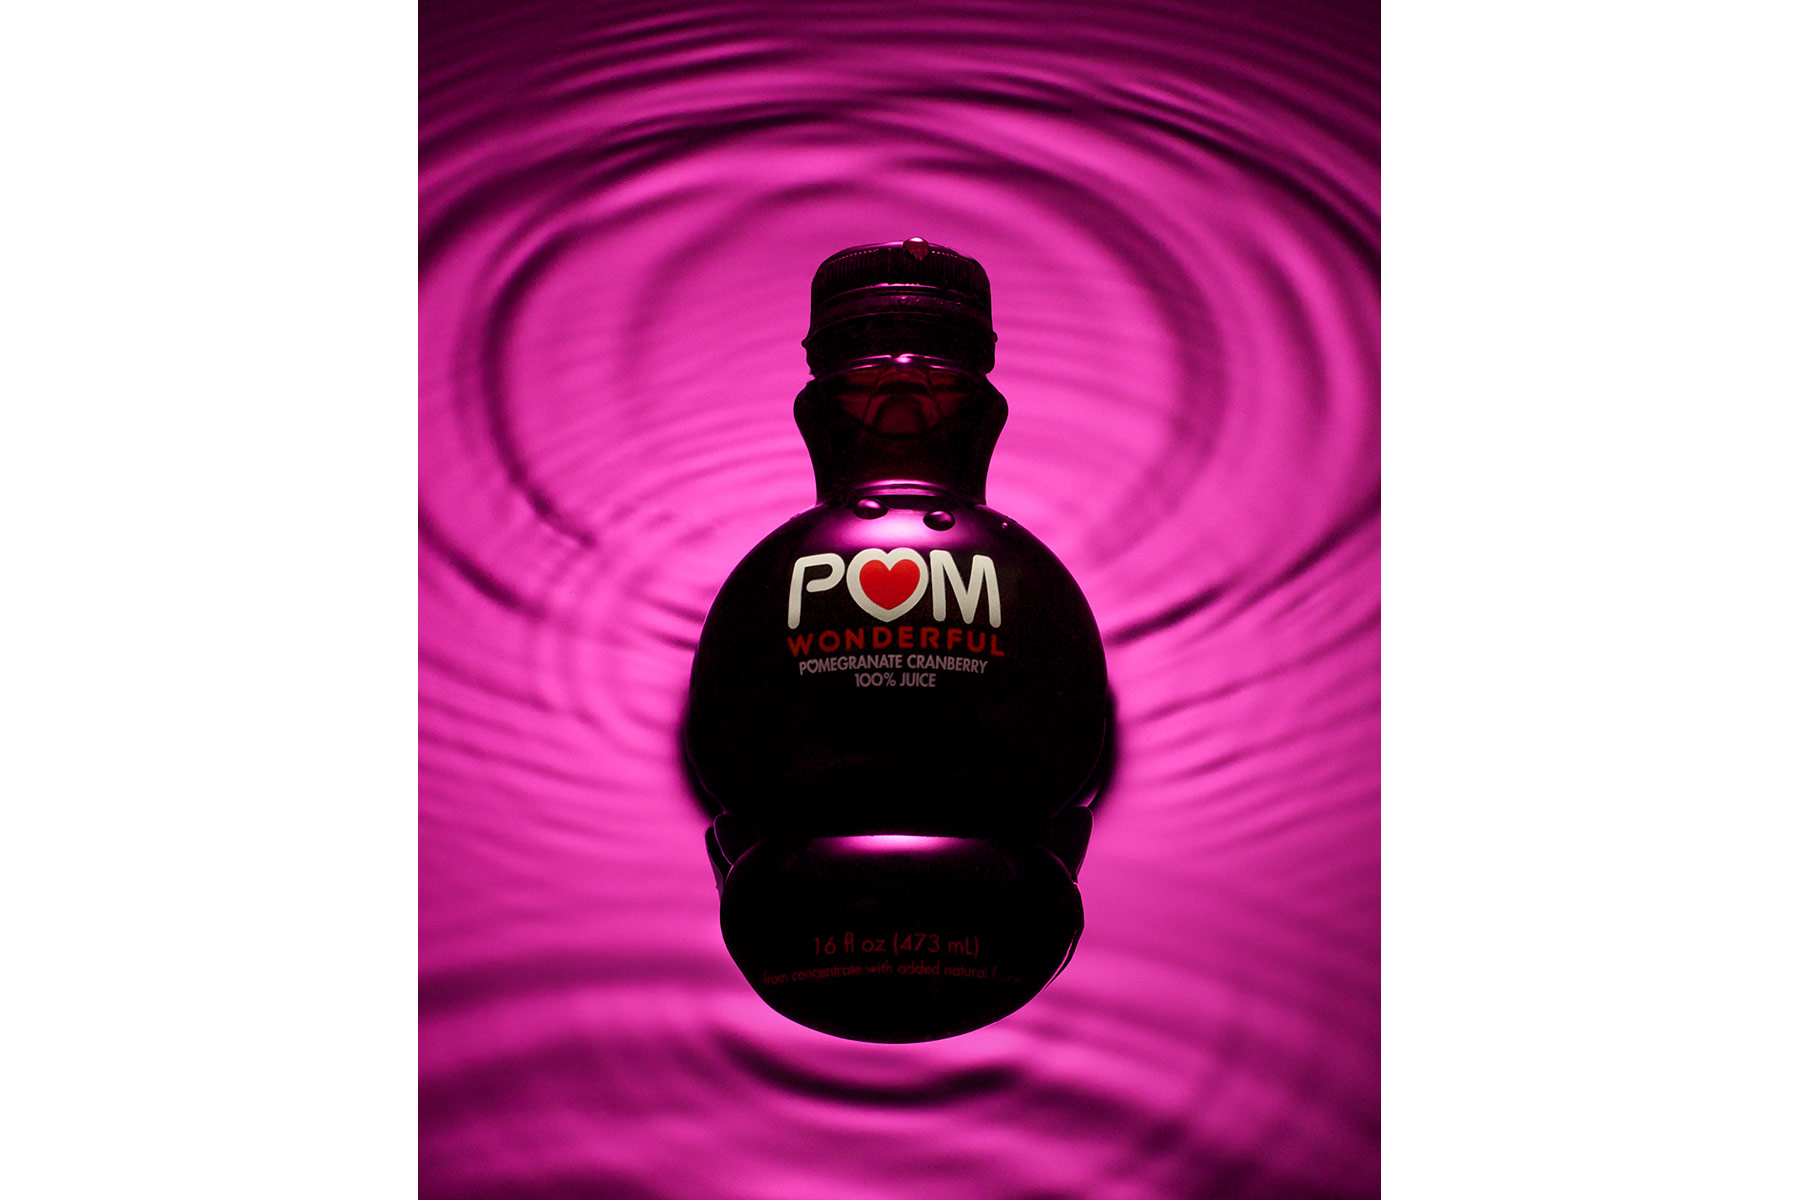 Pom Wonderful Bottle | Dovis Bird Agency Reps